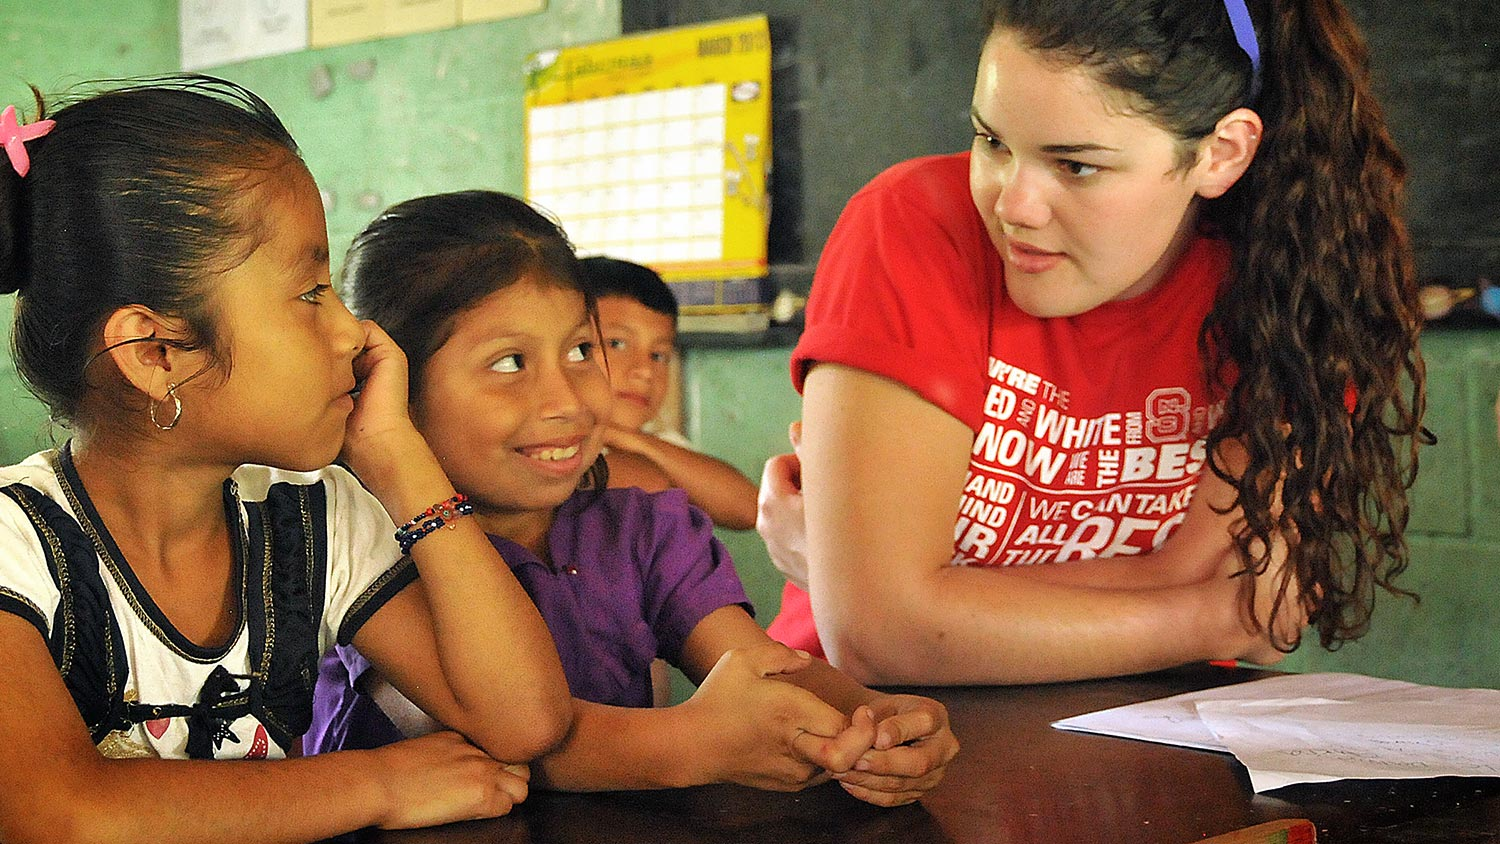 A female NCState student talking to young children during her peace corps mission.